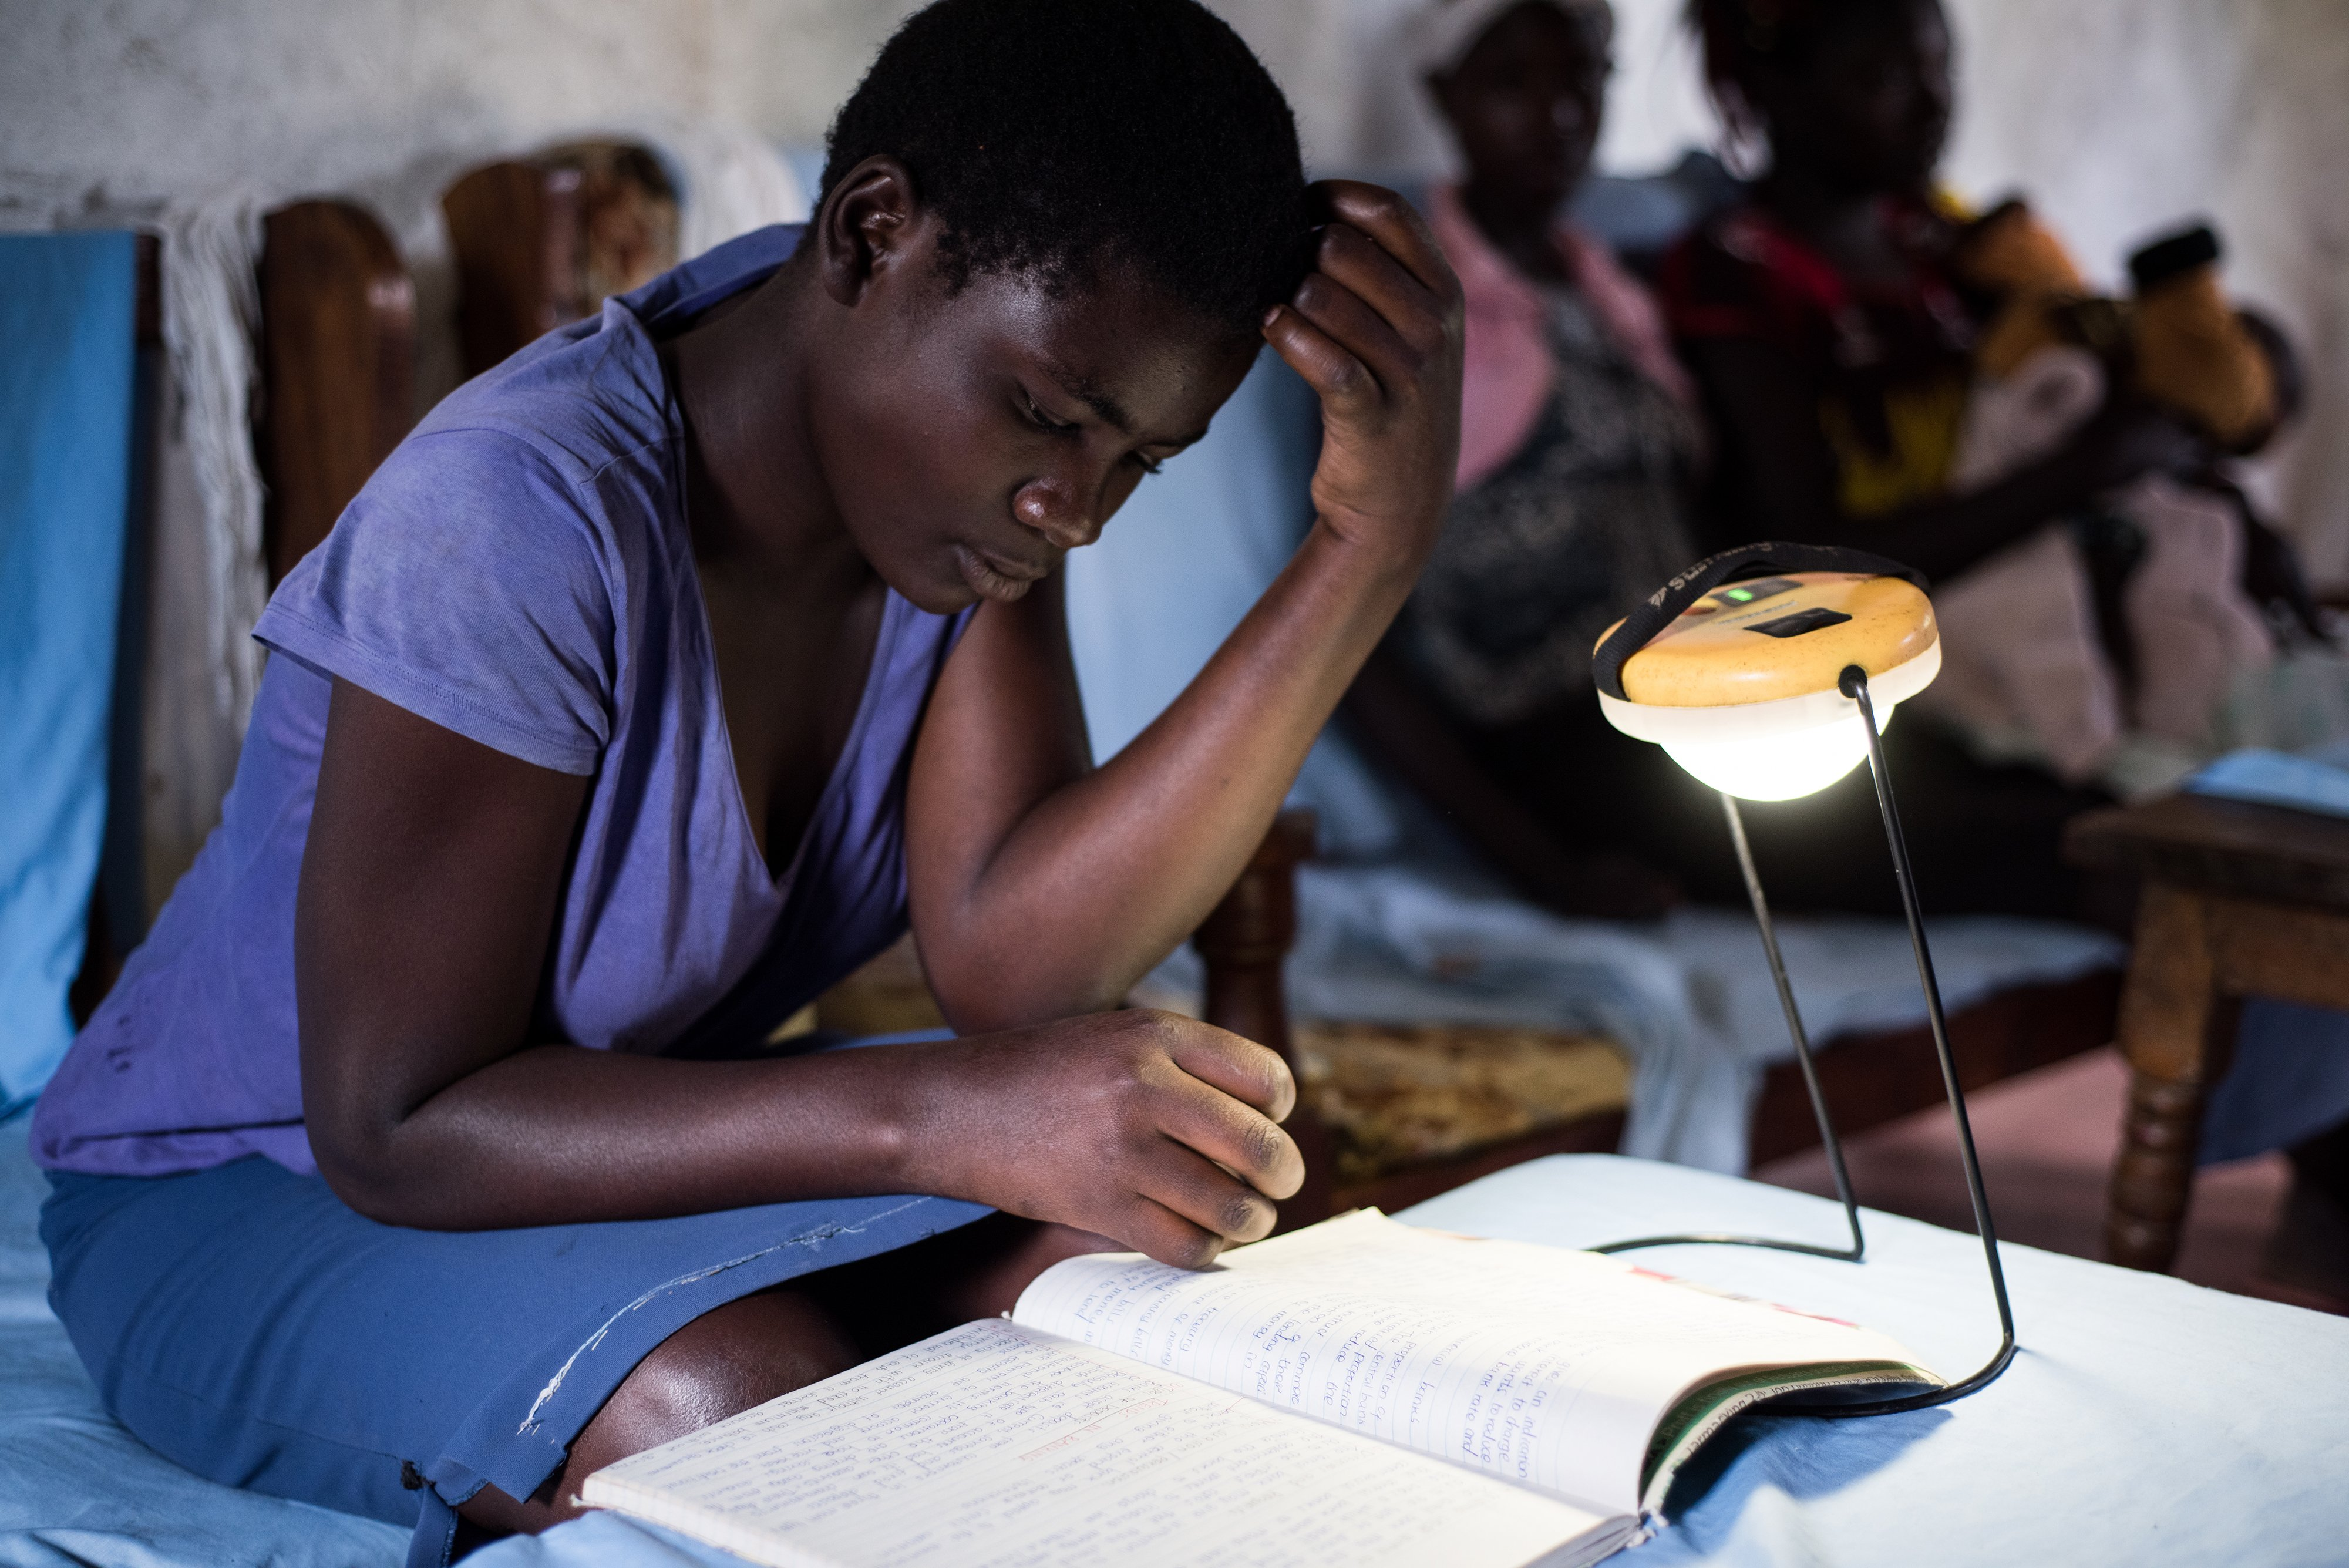 Using solar lamp to do homework